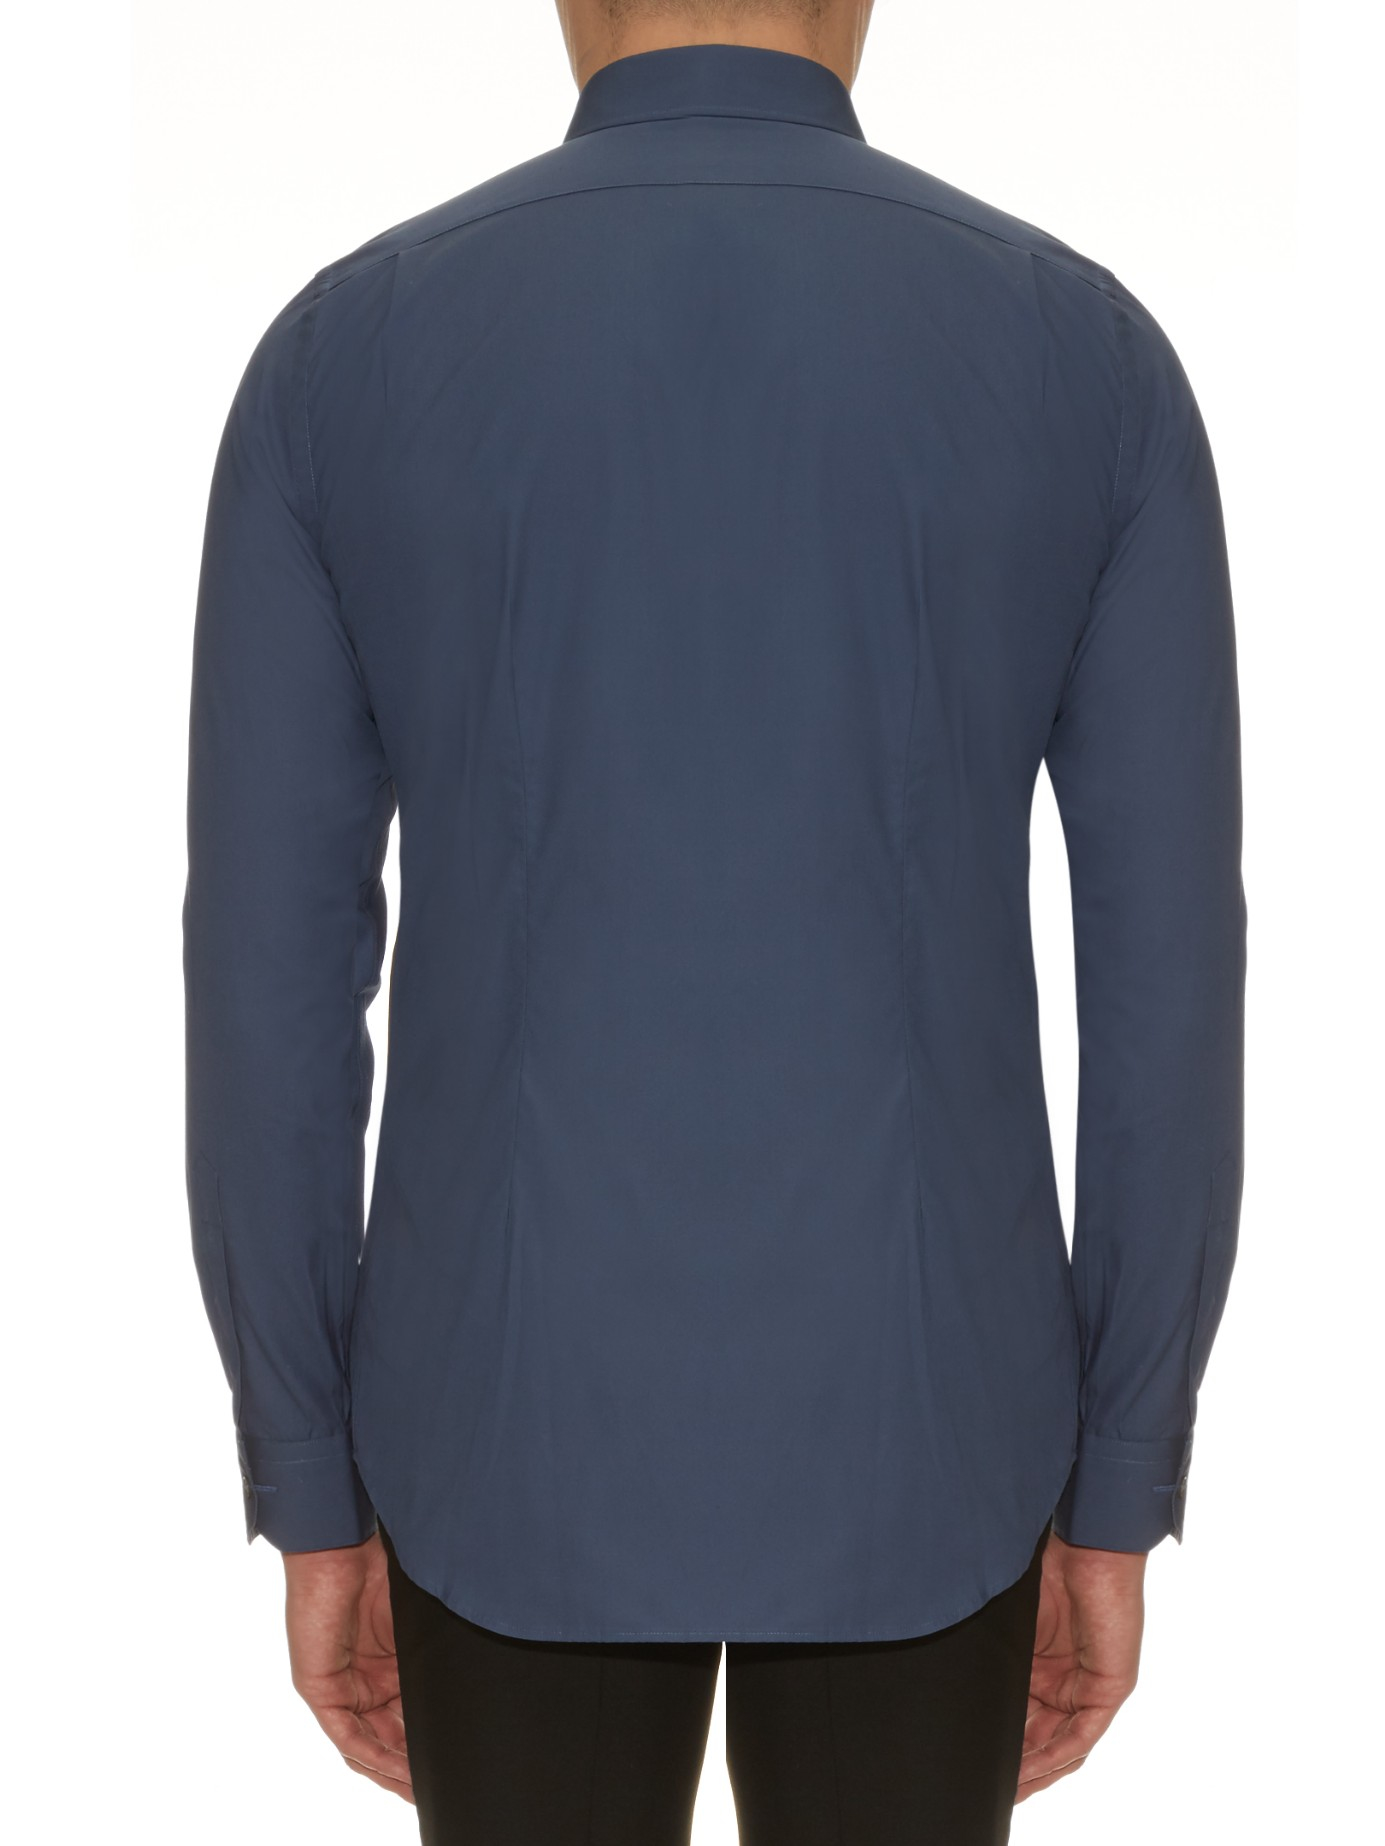 Paul Smith Soho Button Cuff Cotton Shirt In Blue For Men